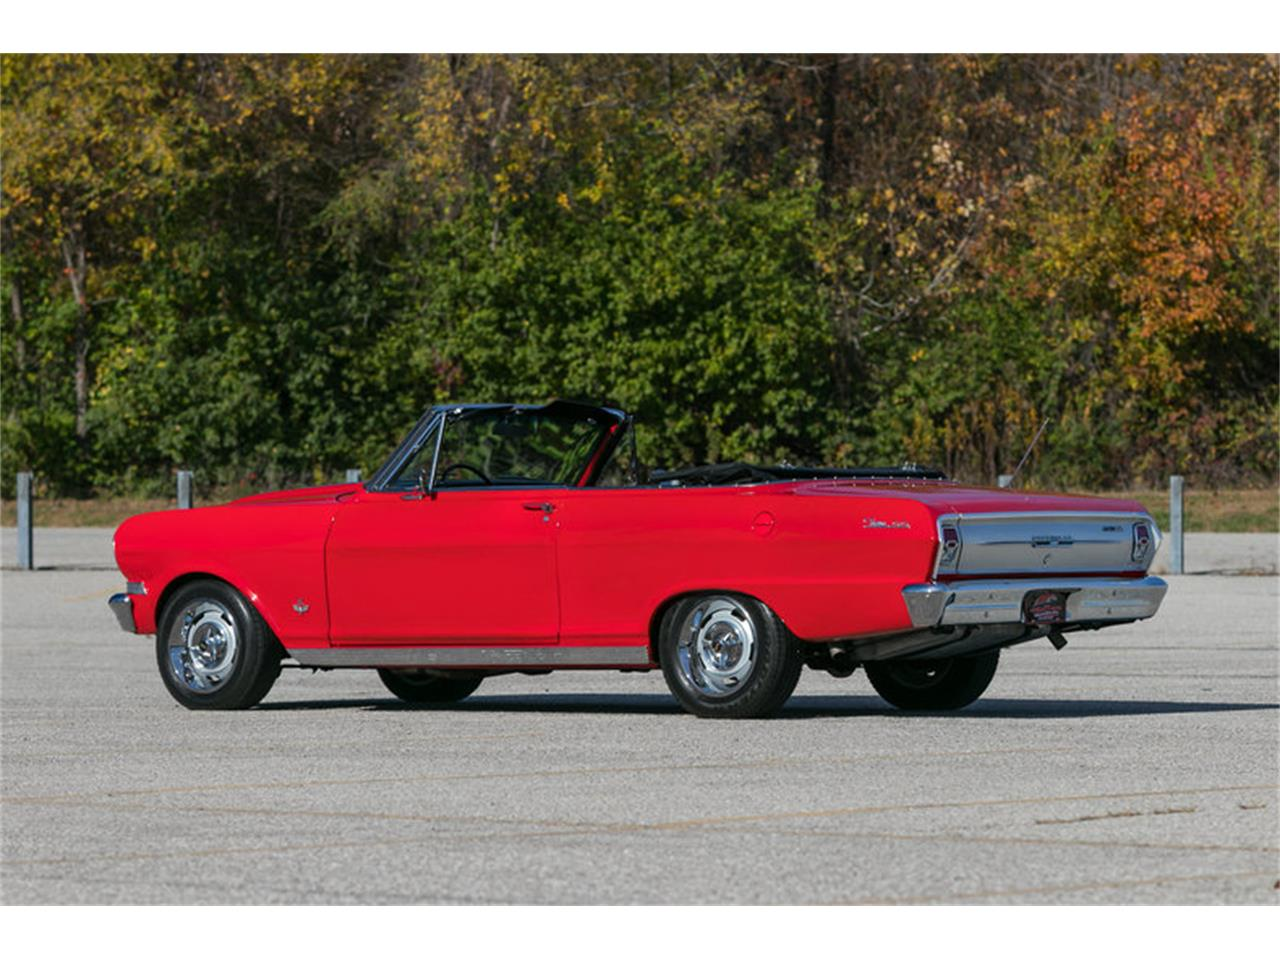 Large Picture of '63 Chevy II Nova located in Missouri - $32,995.00 Offered by Fast Lane Classic Cars Inc. - MAT6